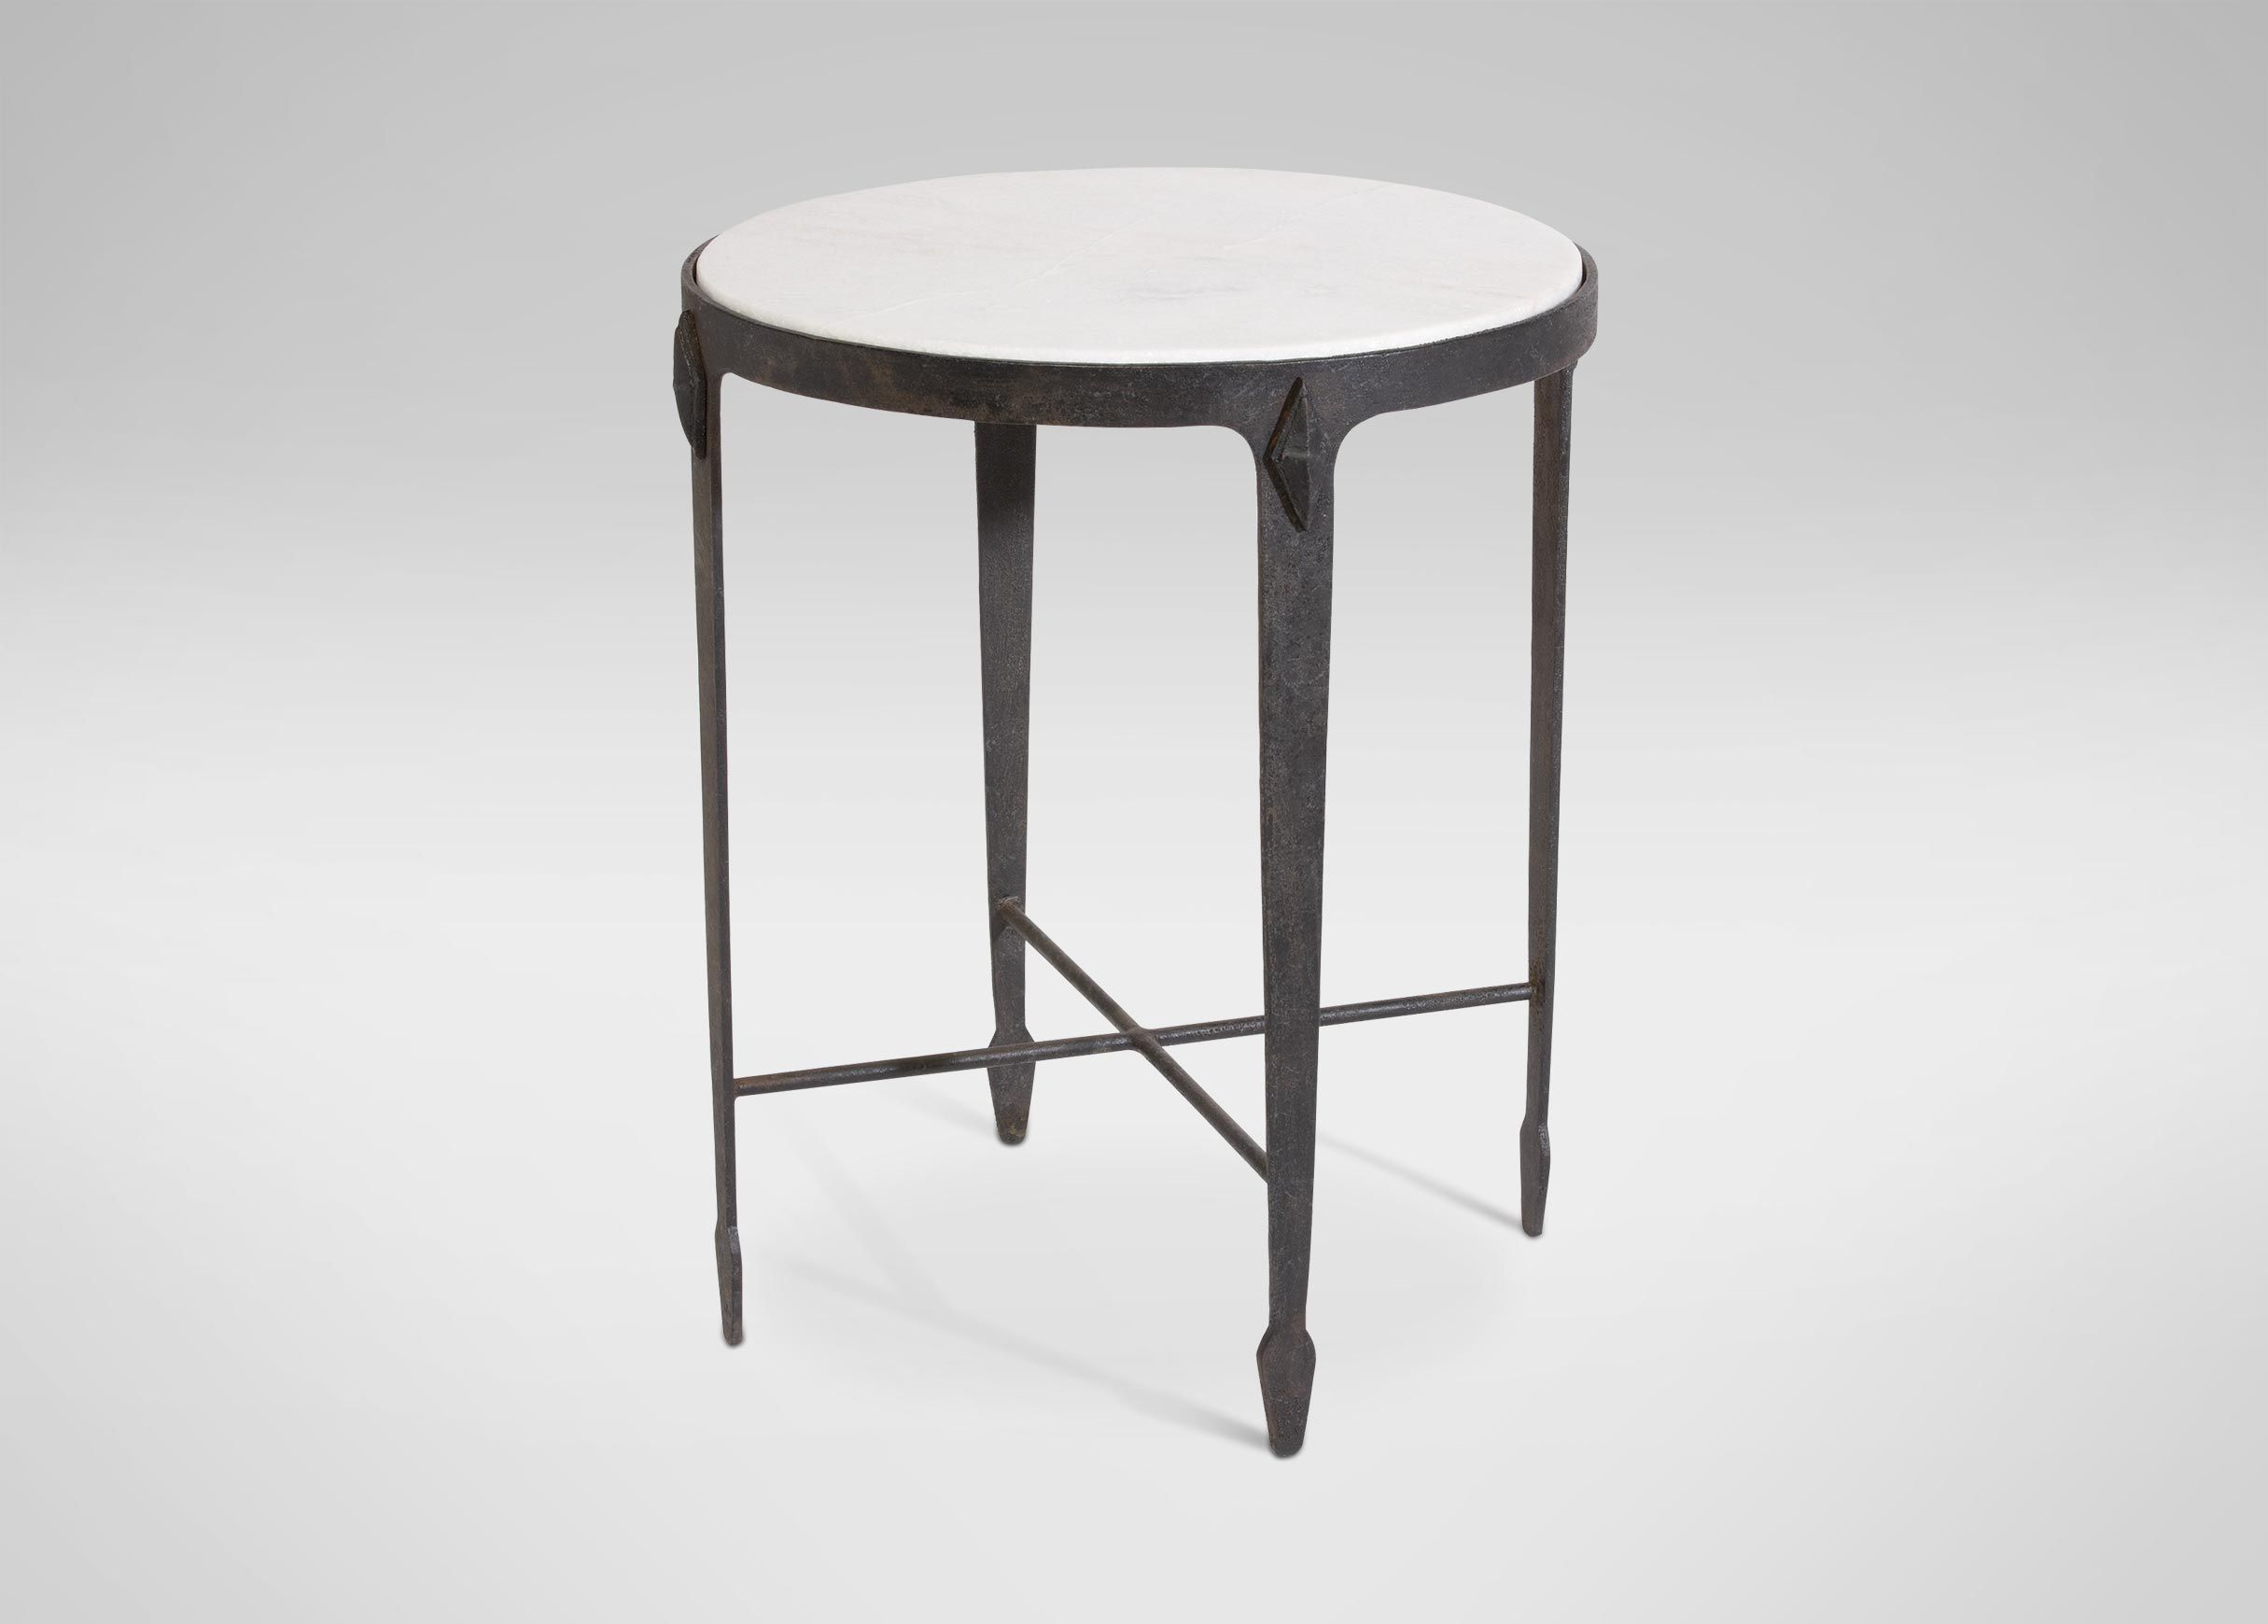 arteriors chloe brass and white accent table marble top plans jaca tables furniture ideas intended for designs barn door track farmhouse dining room drum kit tall nightstand